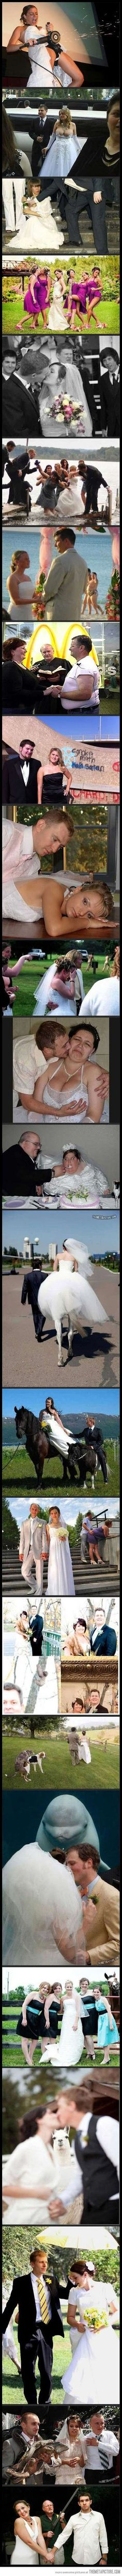 Funny Crazy Wedding Photos